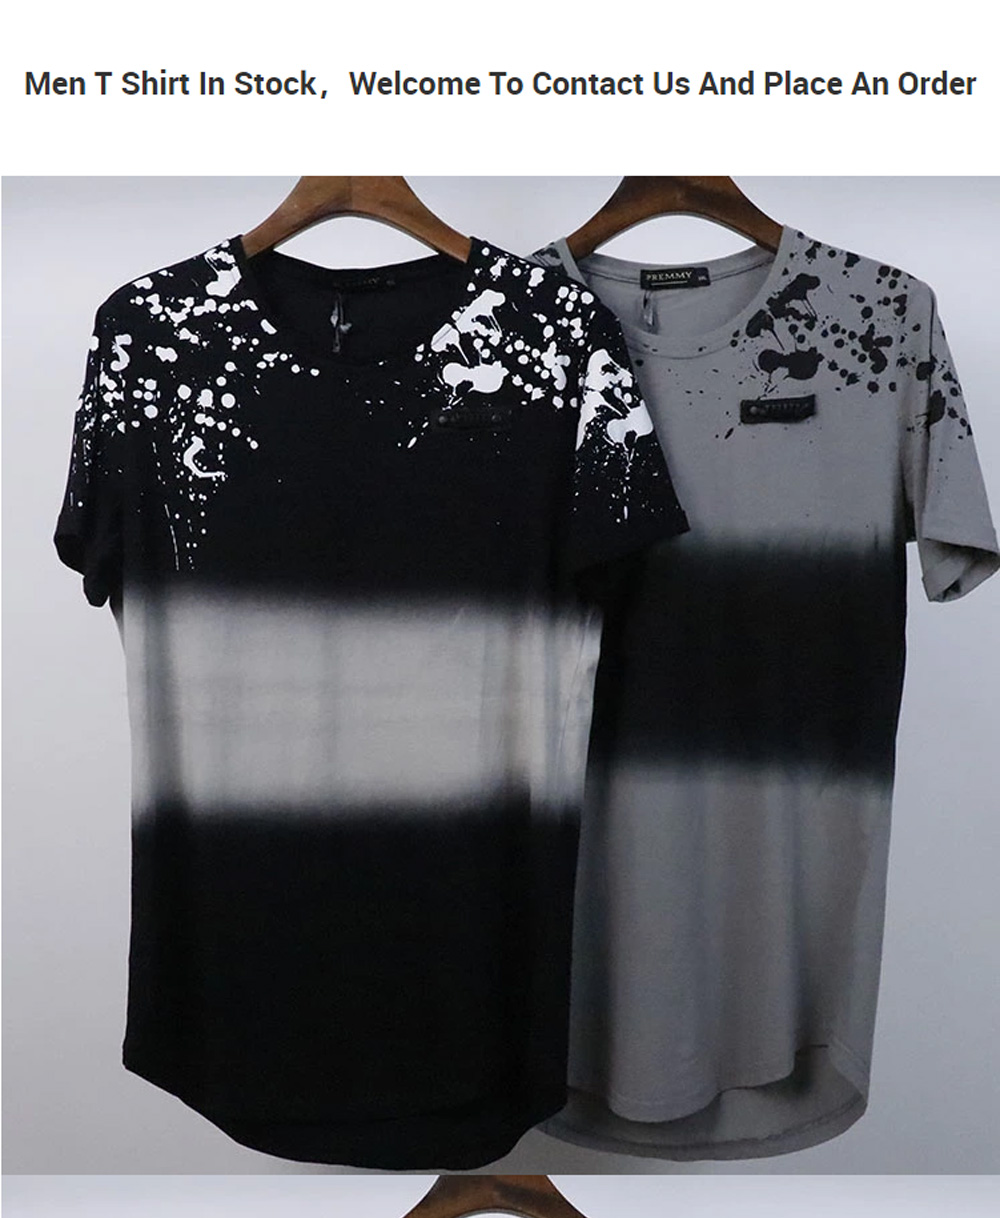 Fashion New Comfortable Simple Style JET FUEL 100% Cotton Vintage Washed Oversized Tshirt Wholesale T Shirts High Quality T-Shirt Tee Shirt Incurve  For men 1